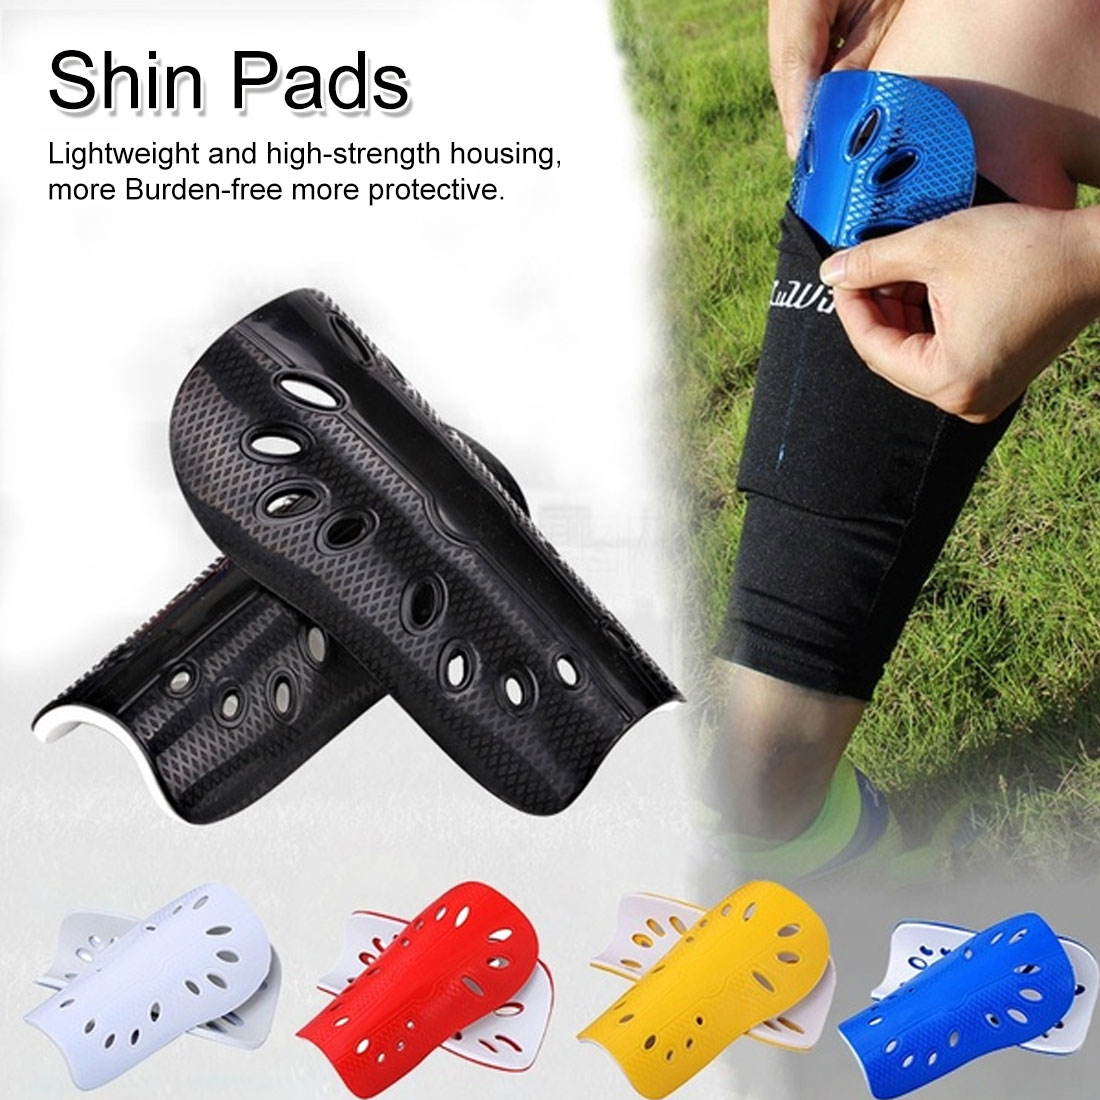 1 Pair Sleeves Soccer Shin Pads Football Game Soccer Shin Guards Pads Leg Adult Knee Support Football Sports